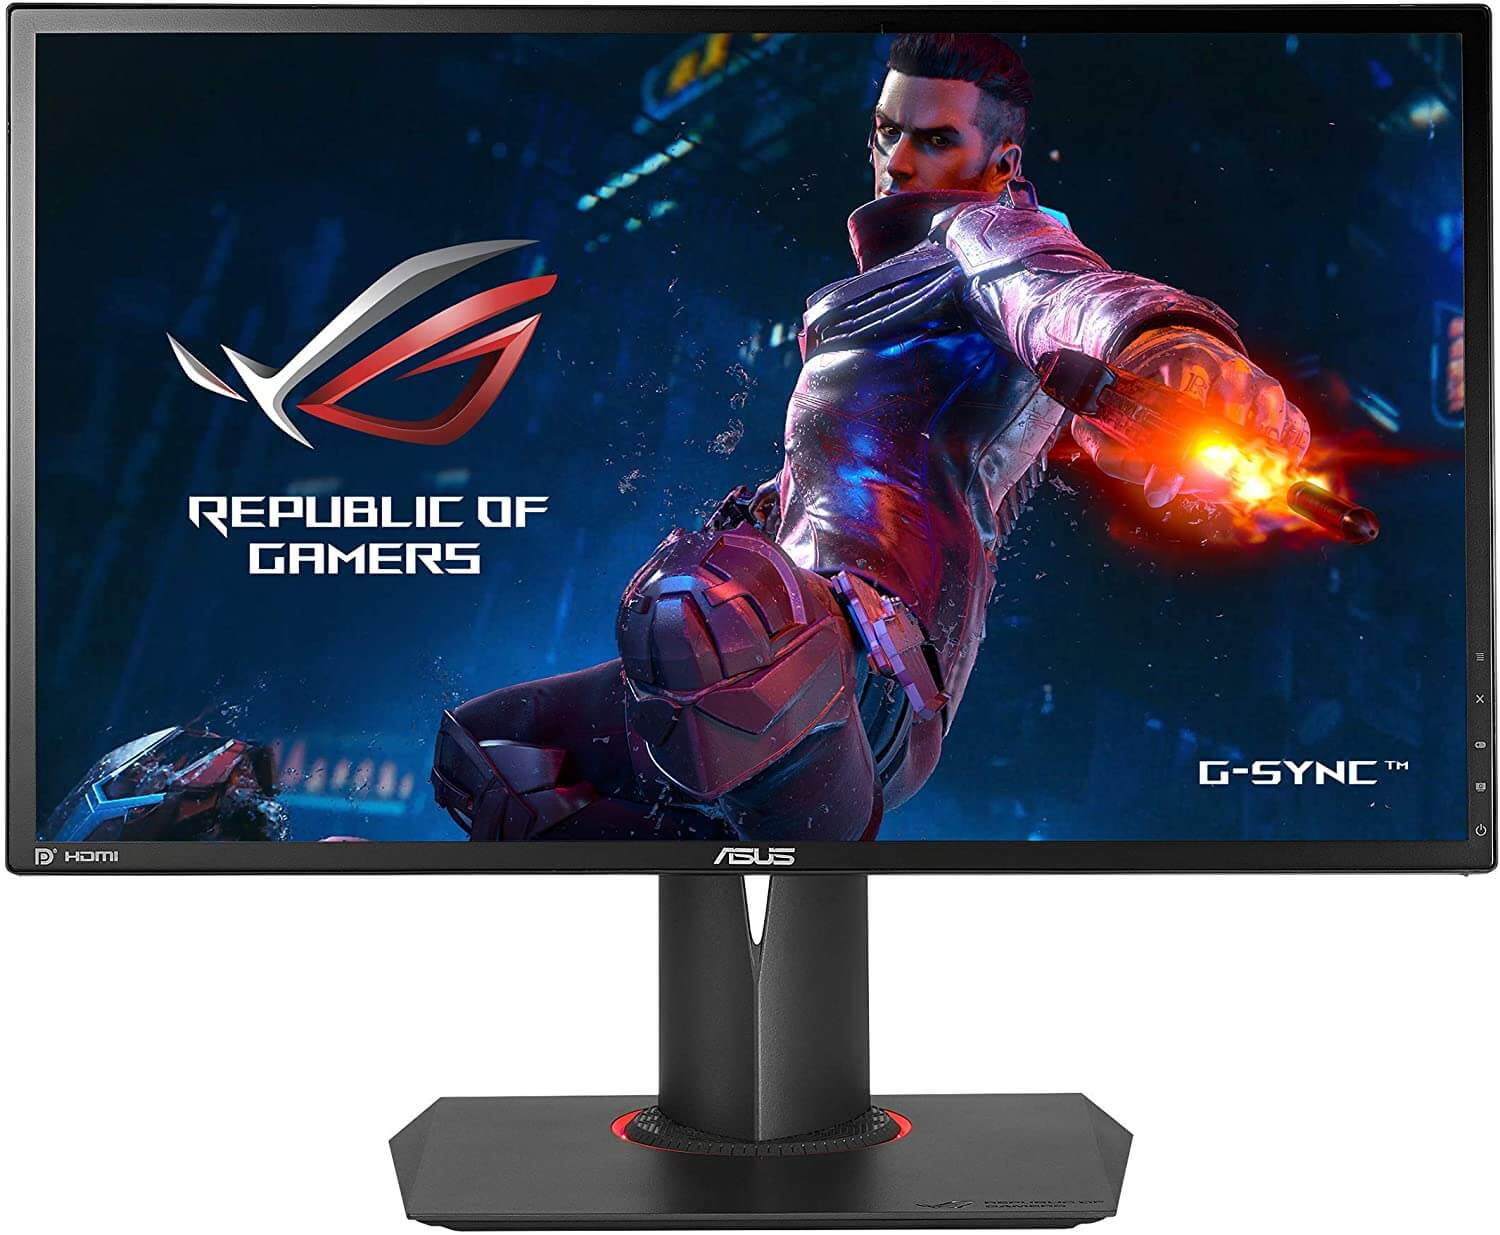 ASUS ROG Monitor for WoW